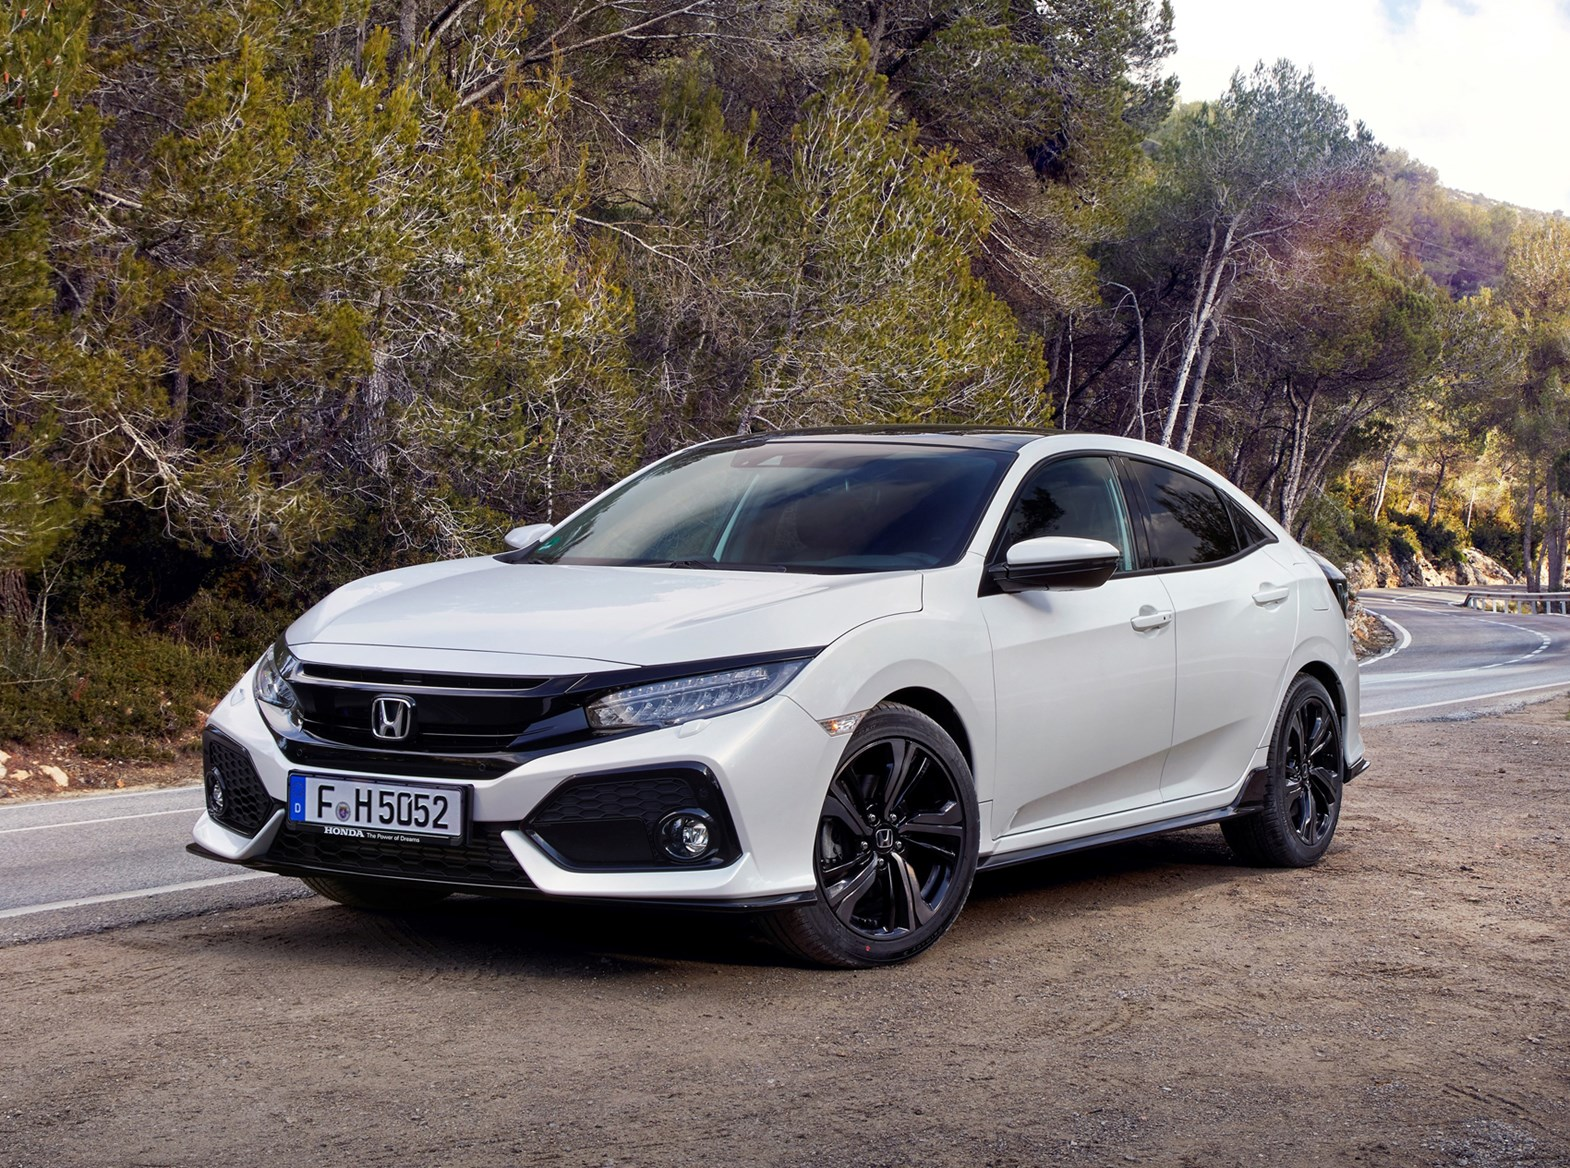 Honda Civic Hatchback For Sale In Pakistan New Honda Release 2017 2018